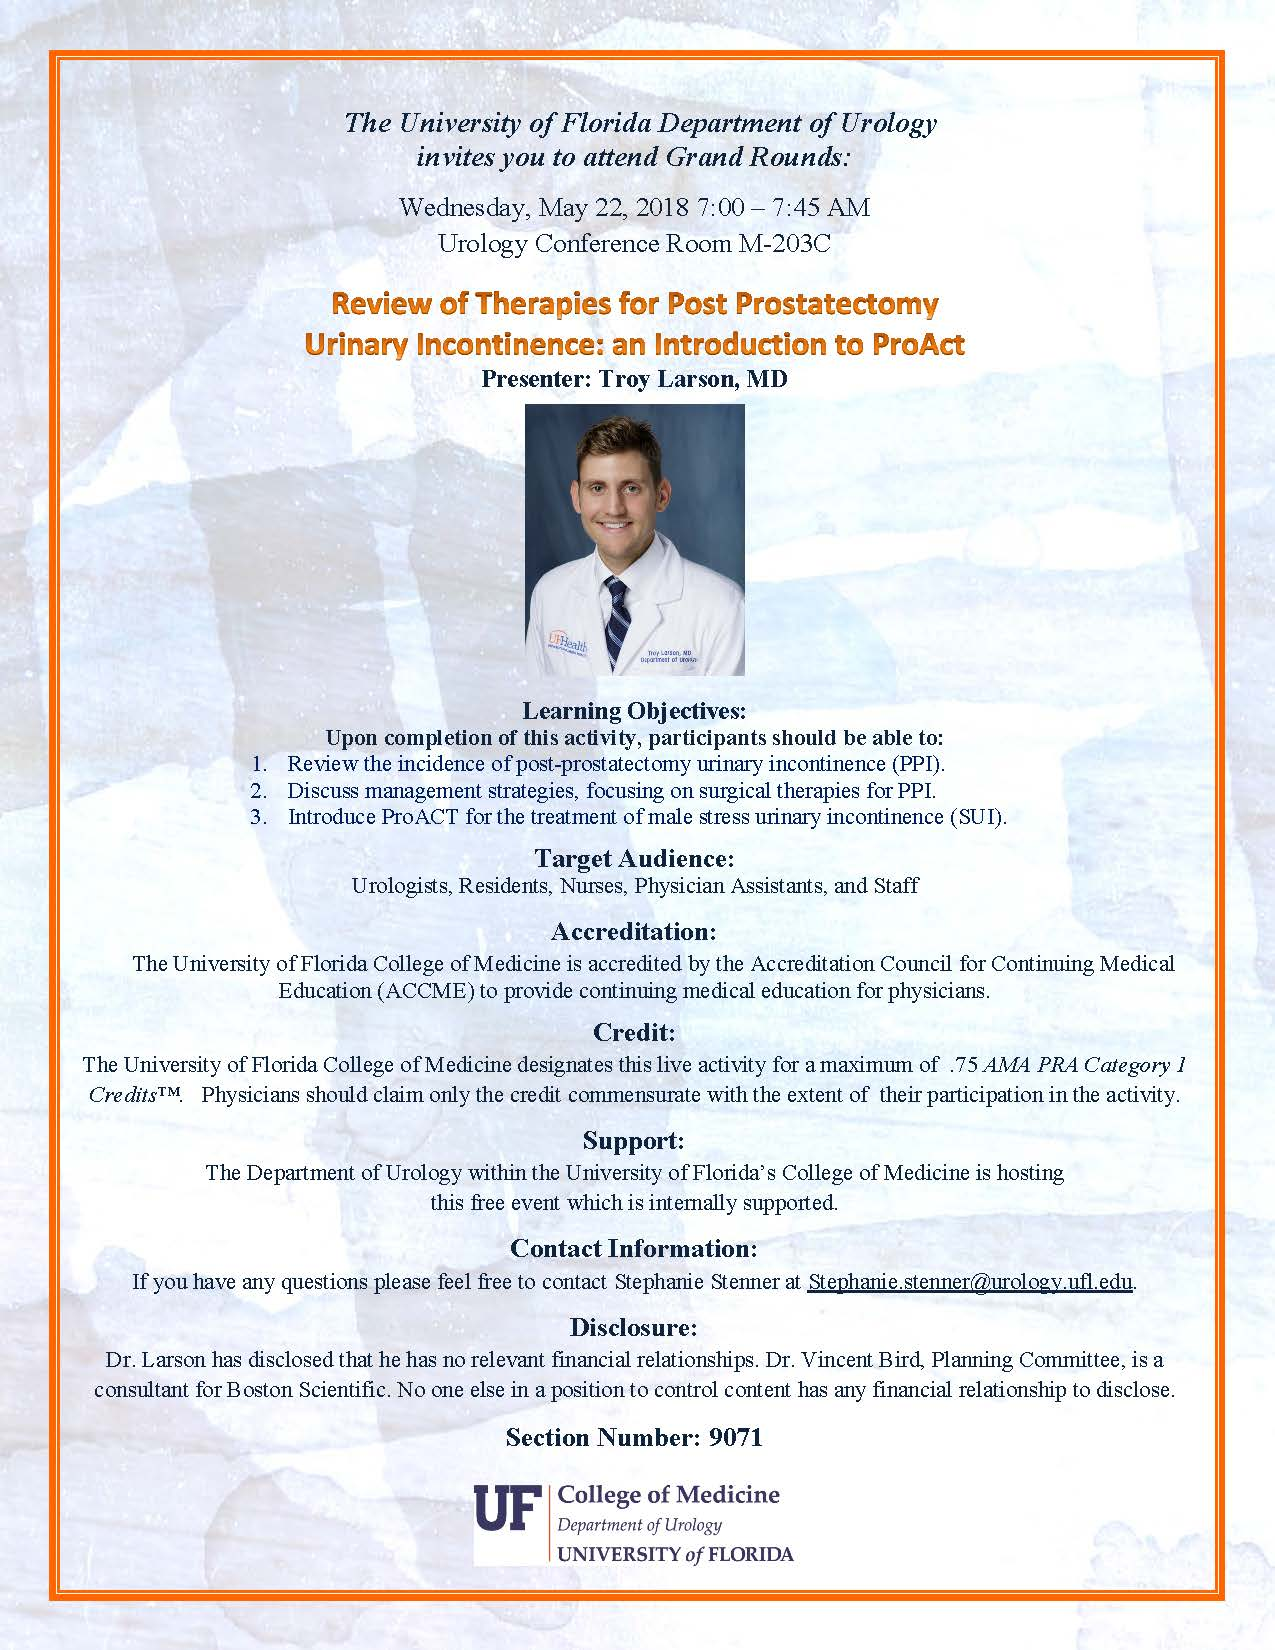 picture of grand rounds flyer for dr troy larson